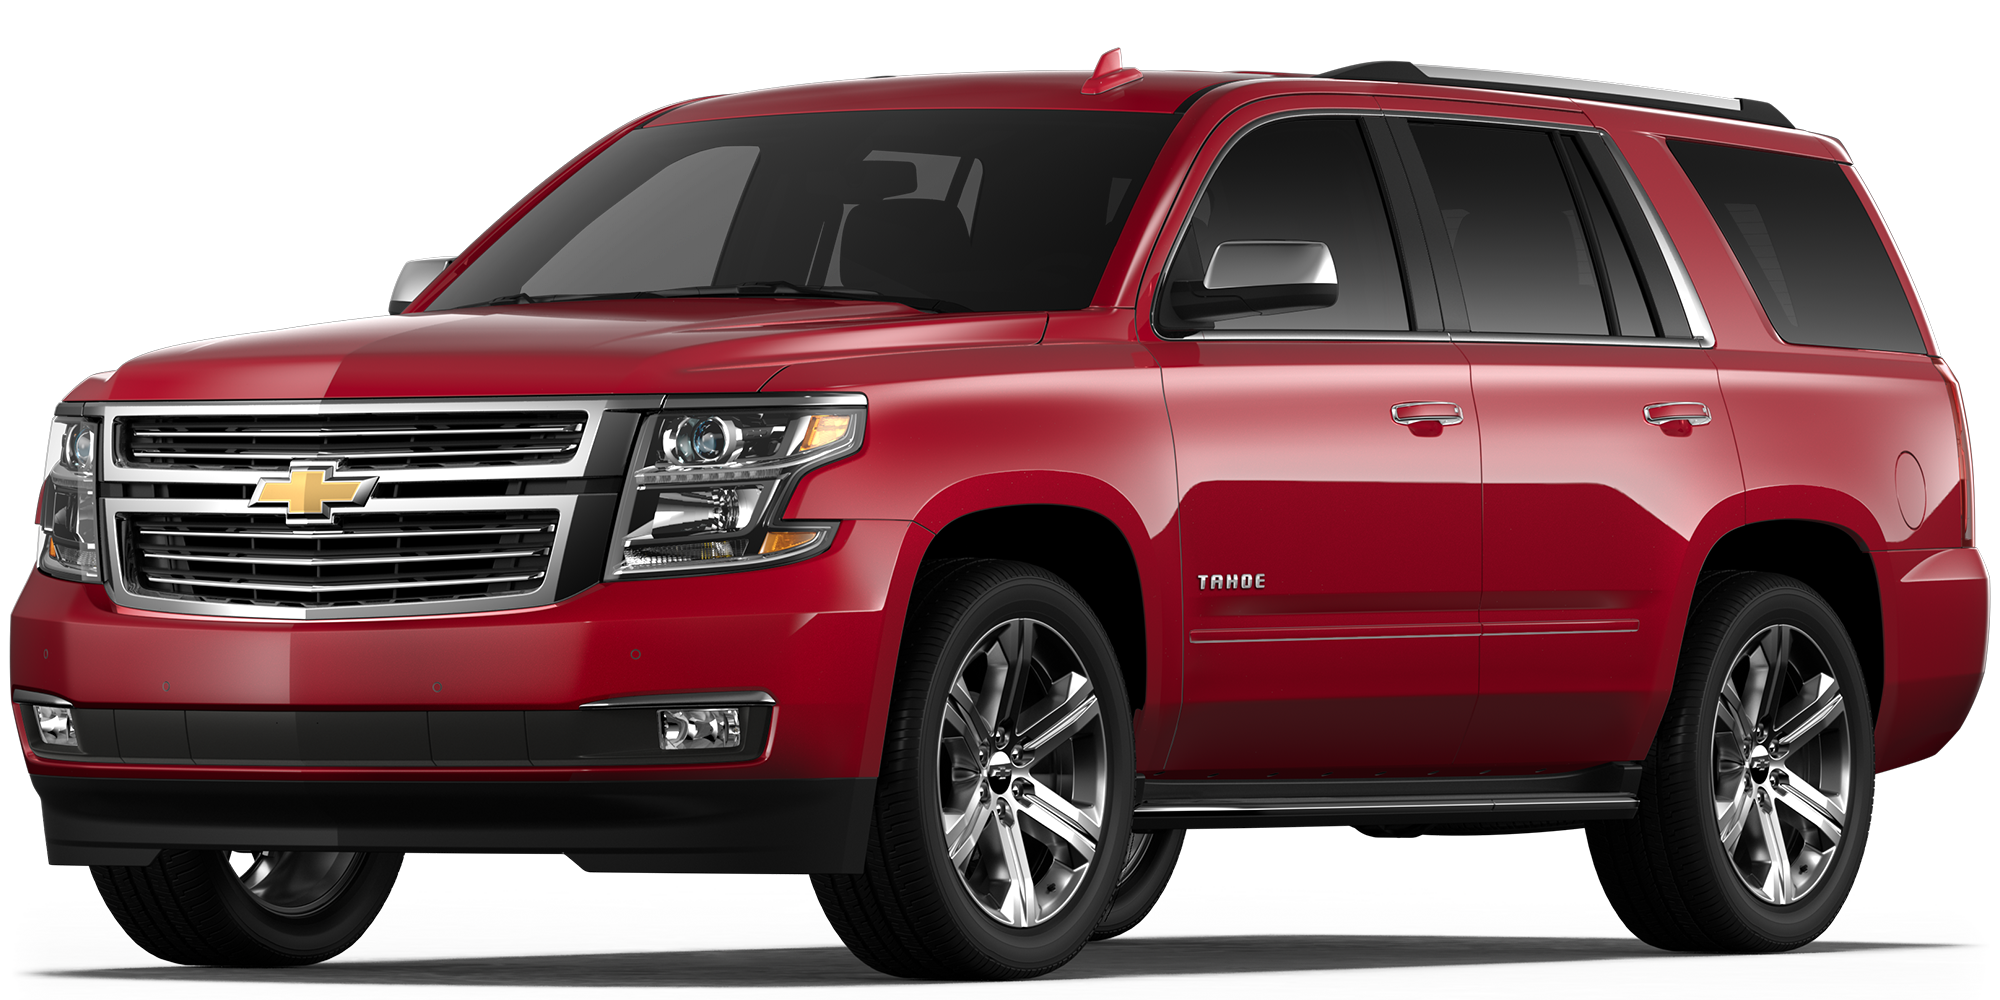 2019 Tahoe Fullsize Suv Avail As 7 Or 8 Seater